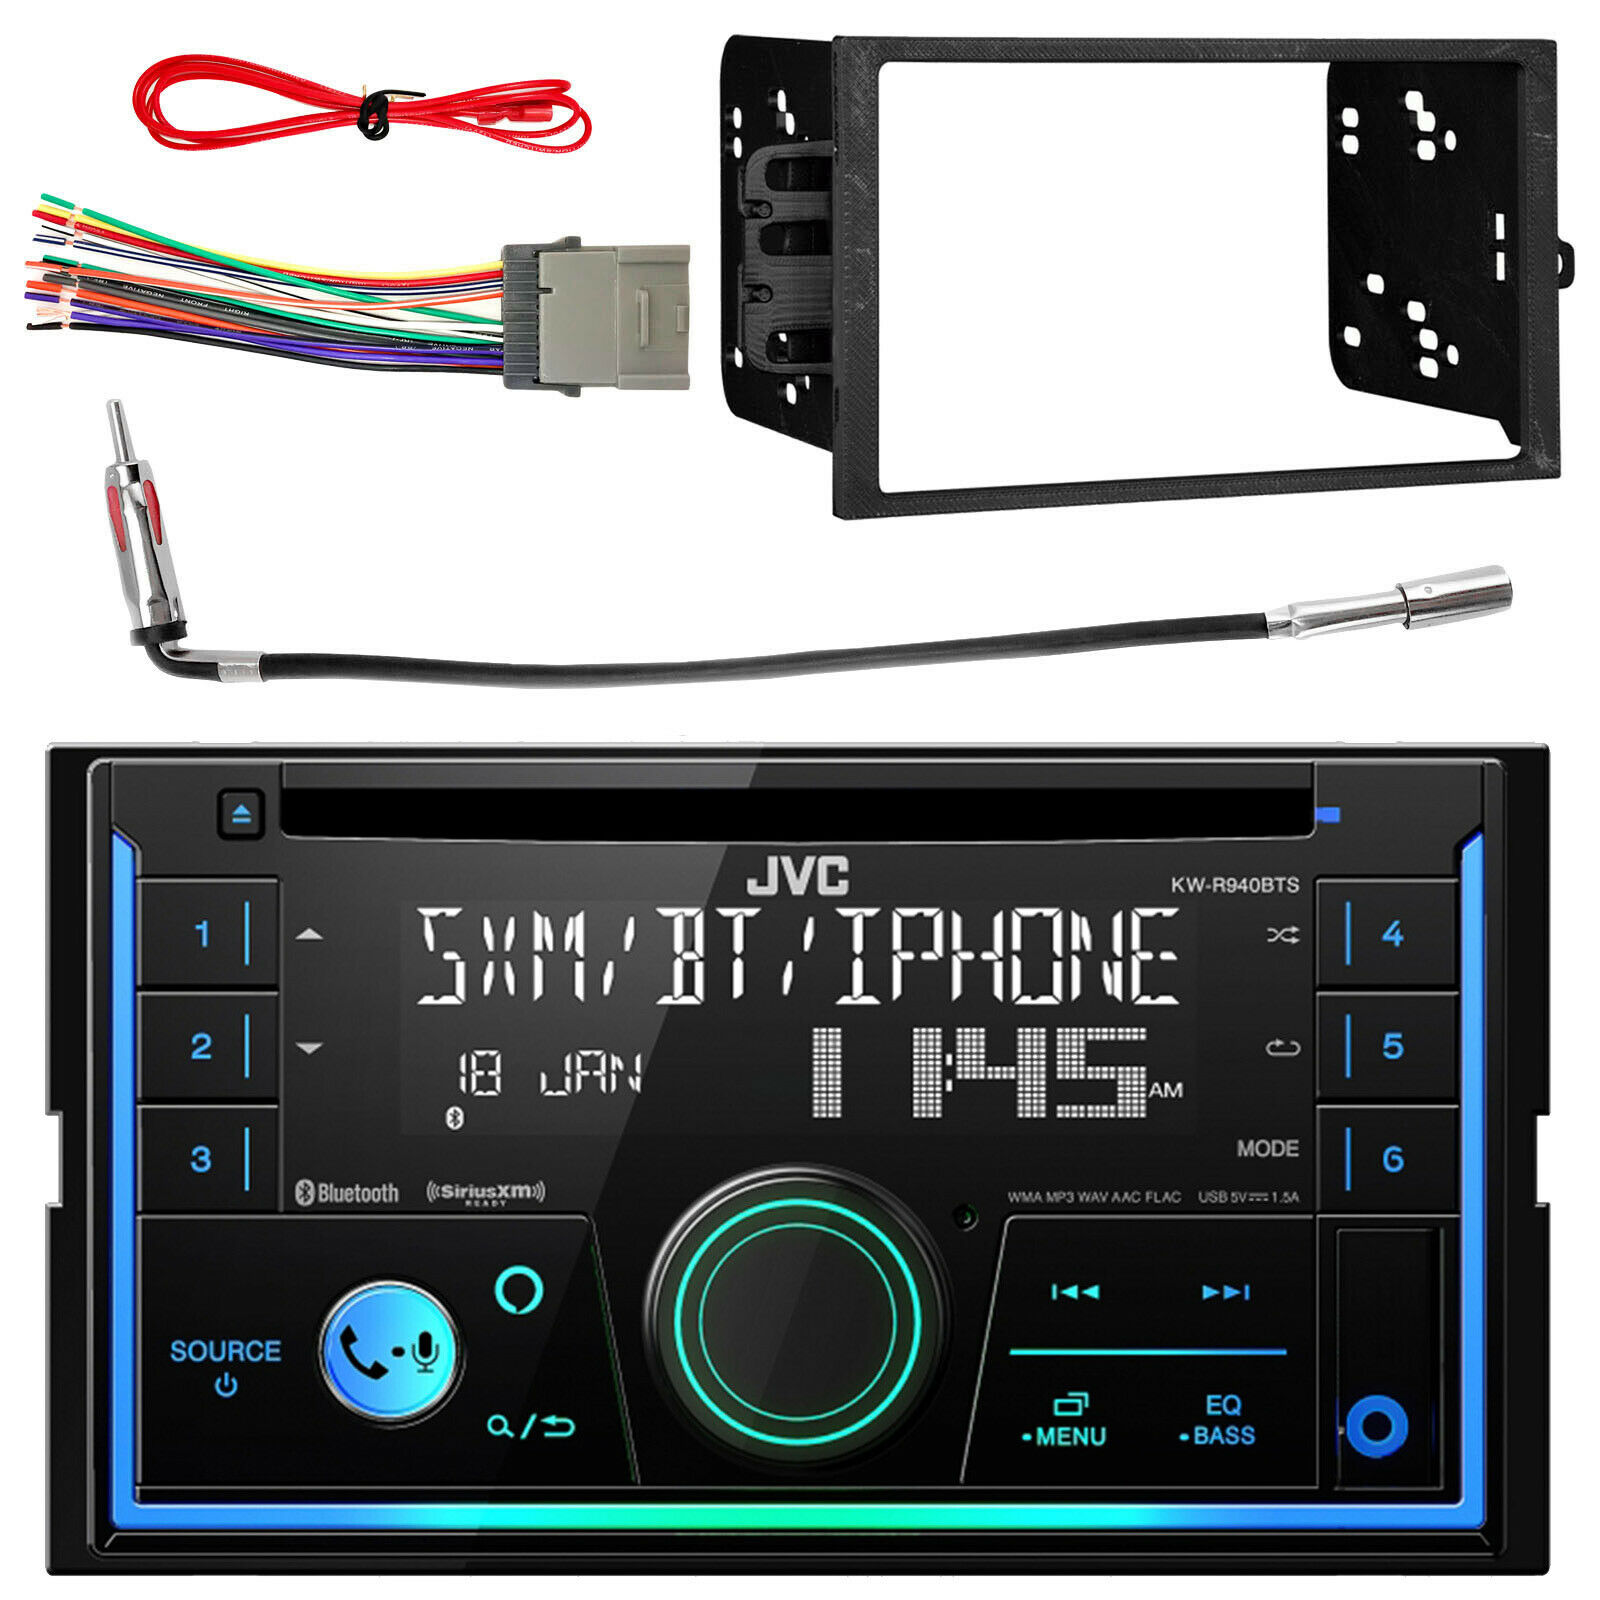 Kenwood Double Din Car Bluetooth Usb Cd Player W Install Mount Kit 1989 Saab Wiring Harness 1 Of 5free Shipping